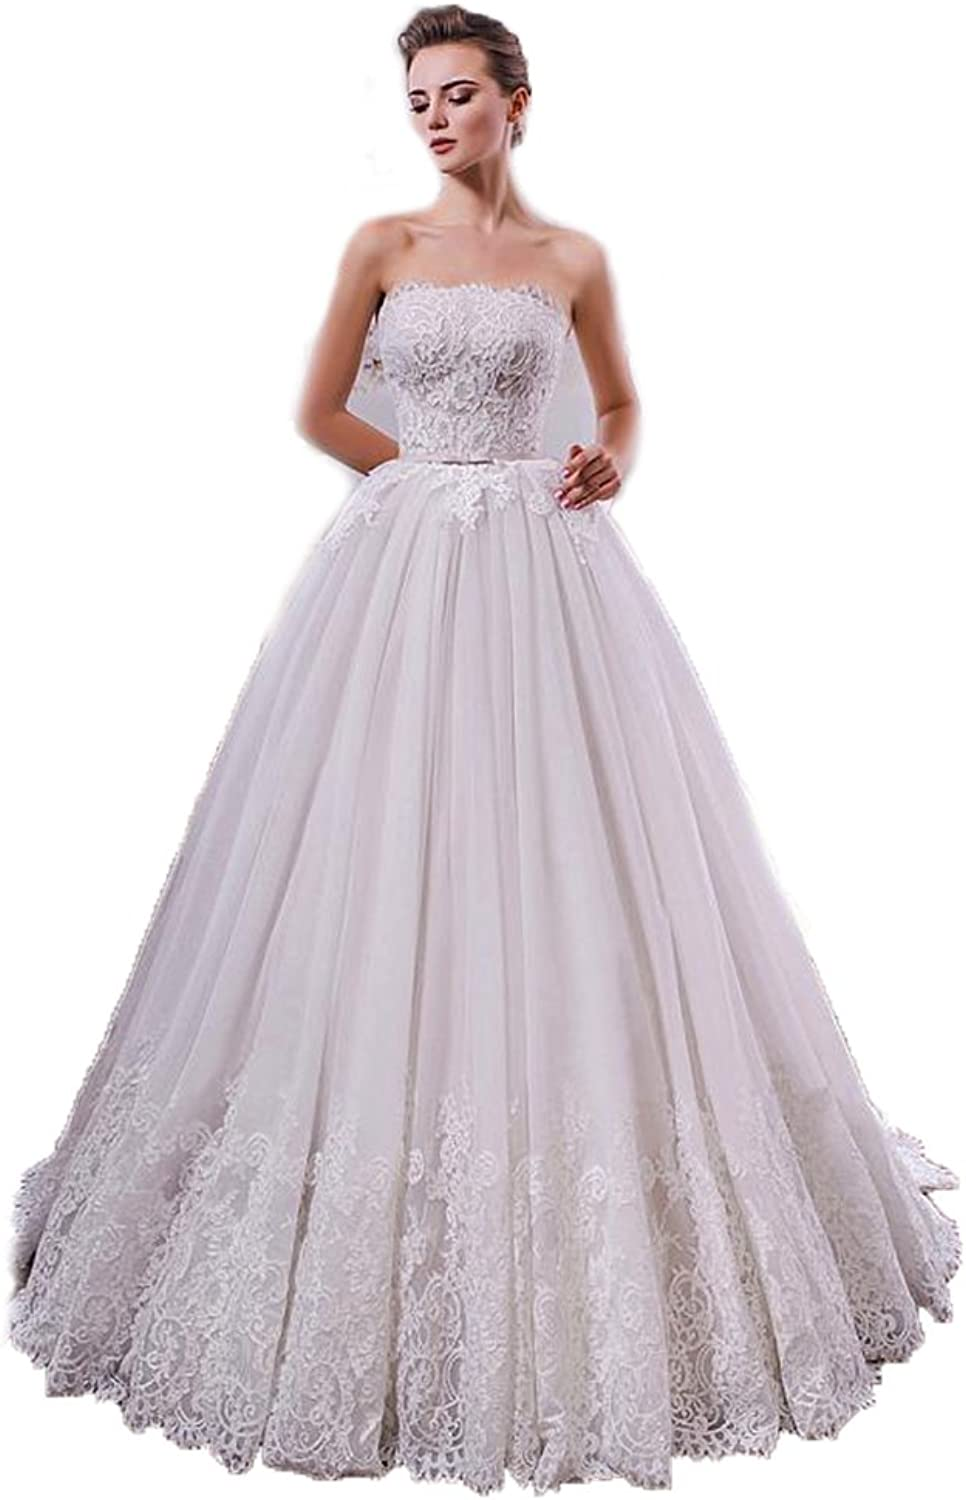 Chenghouse Lace Wedding Dresses Laceup Strapless Bridal Gowns